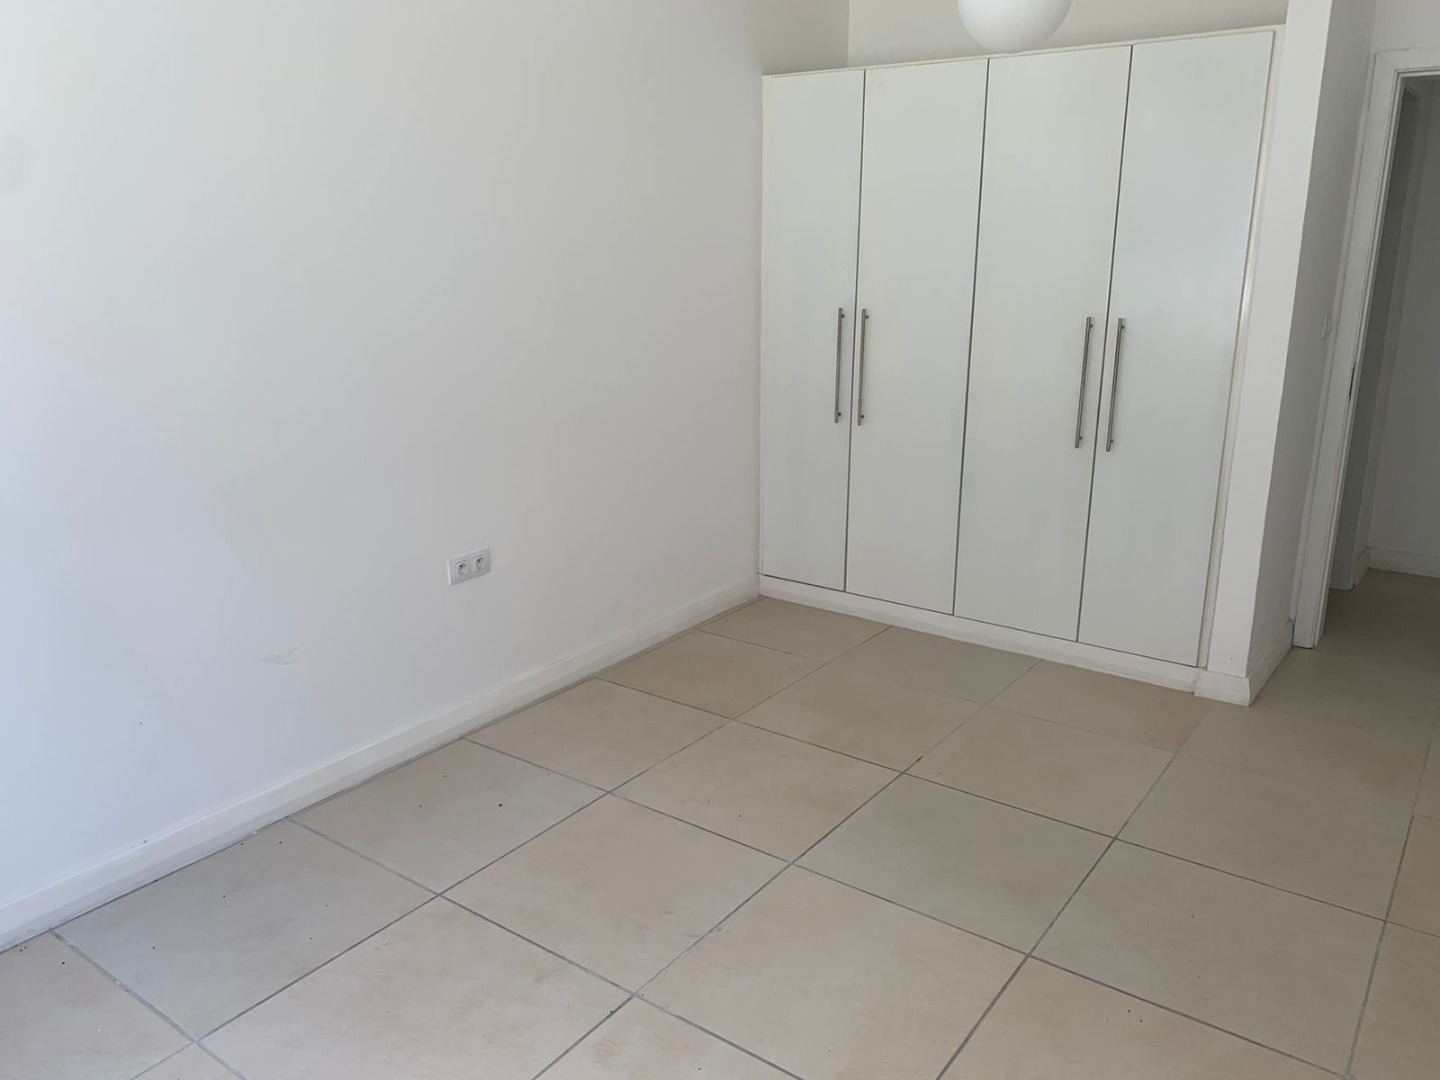 3 Bedroom Townhouse For Sale in Bain Boeuf